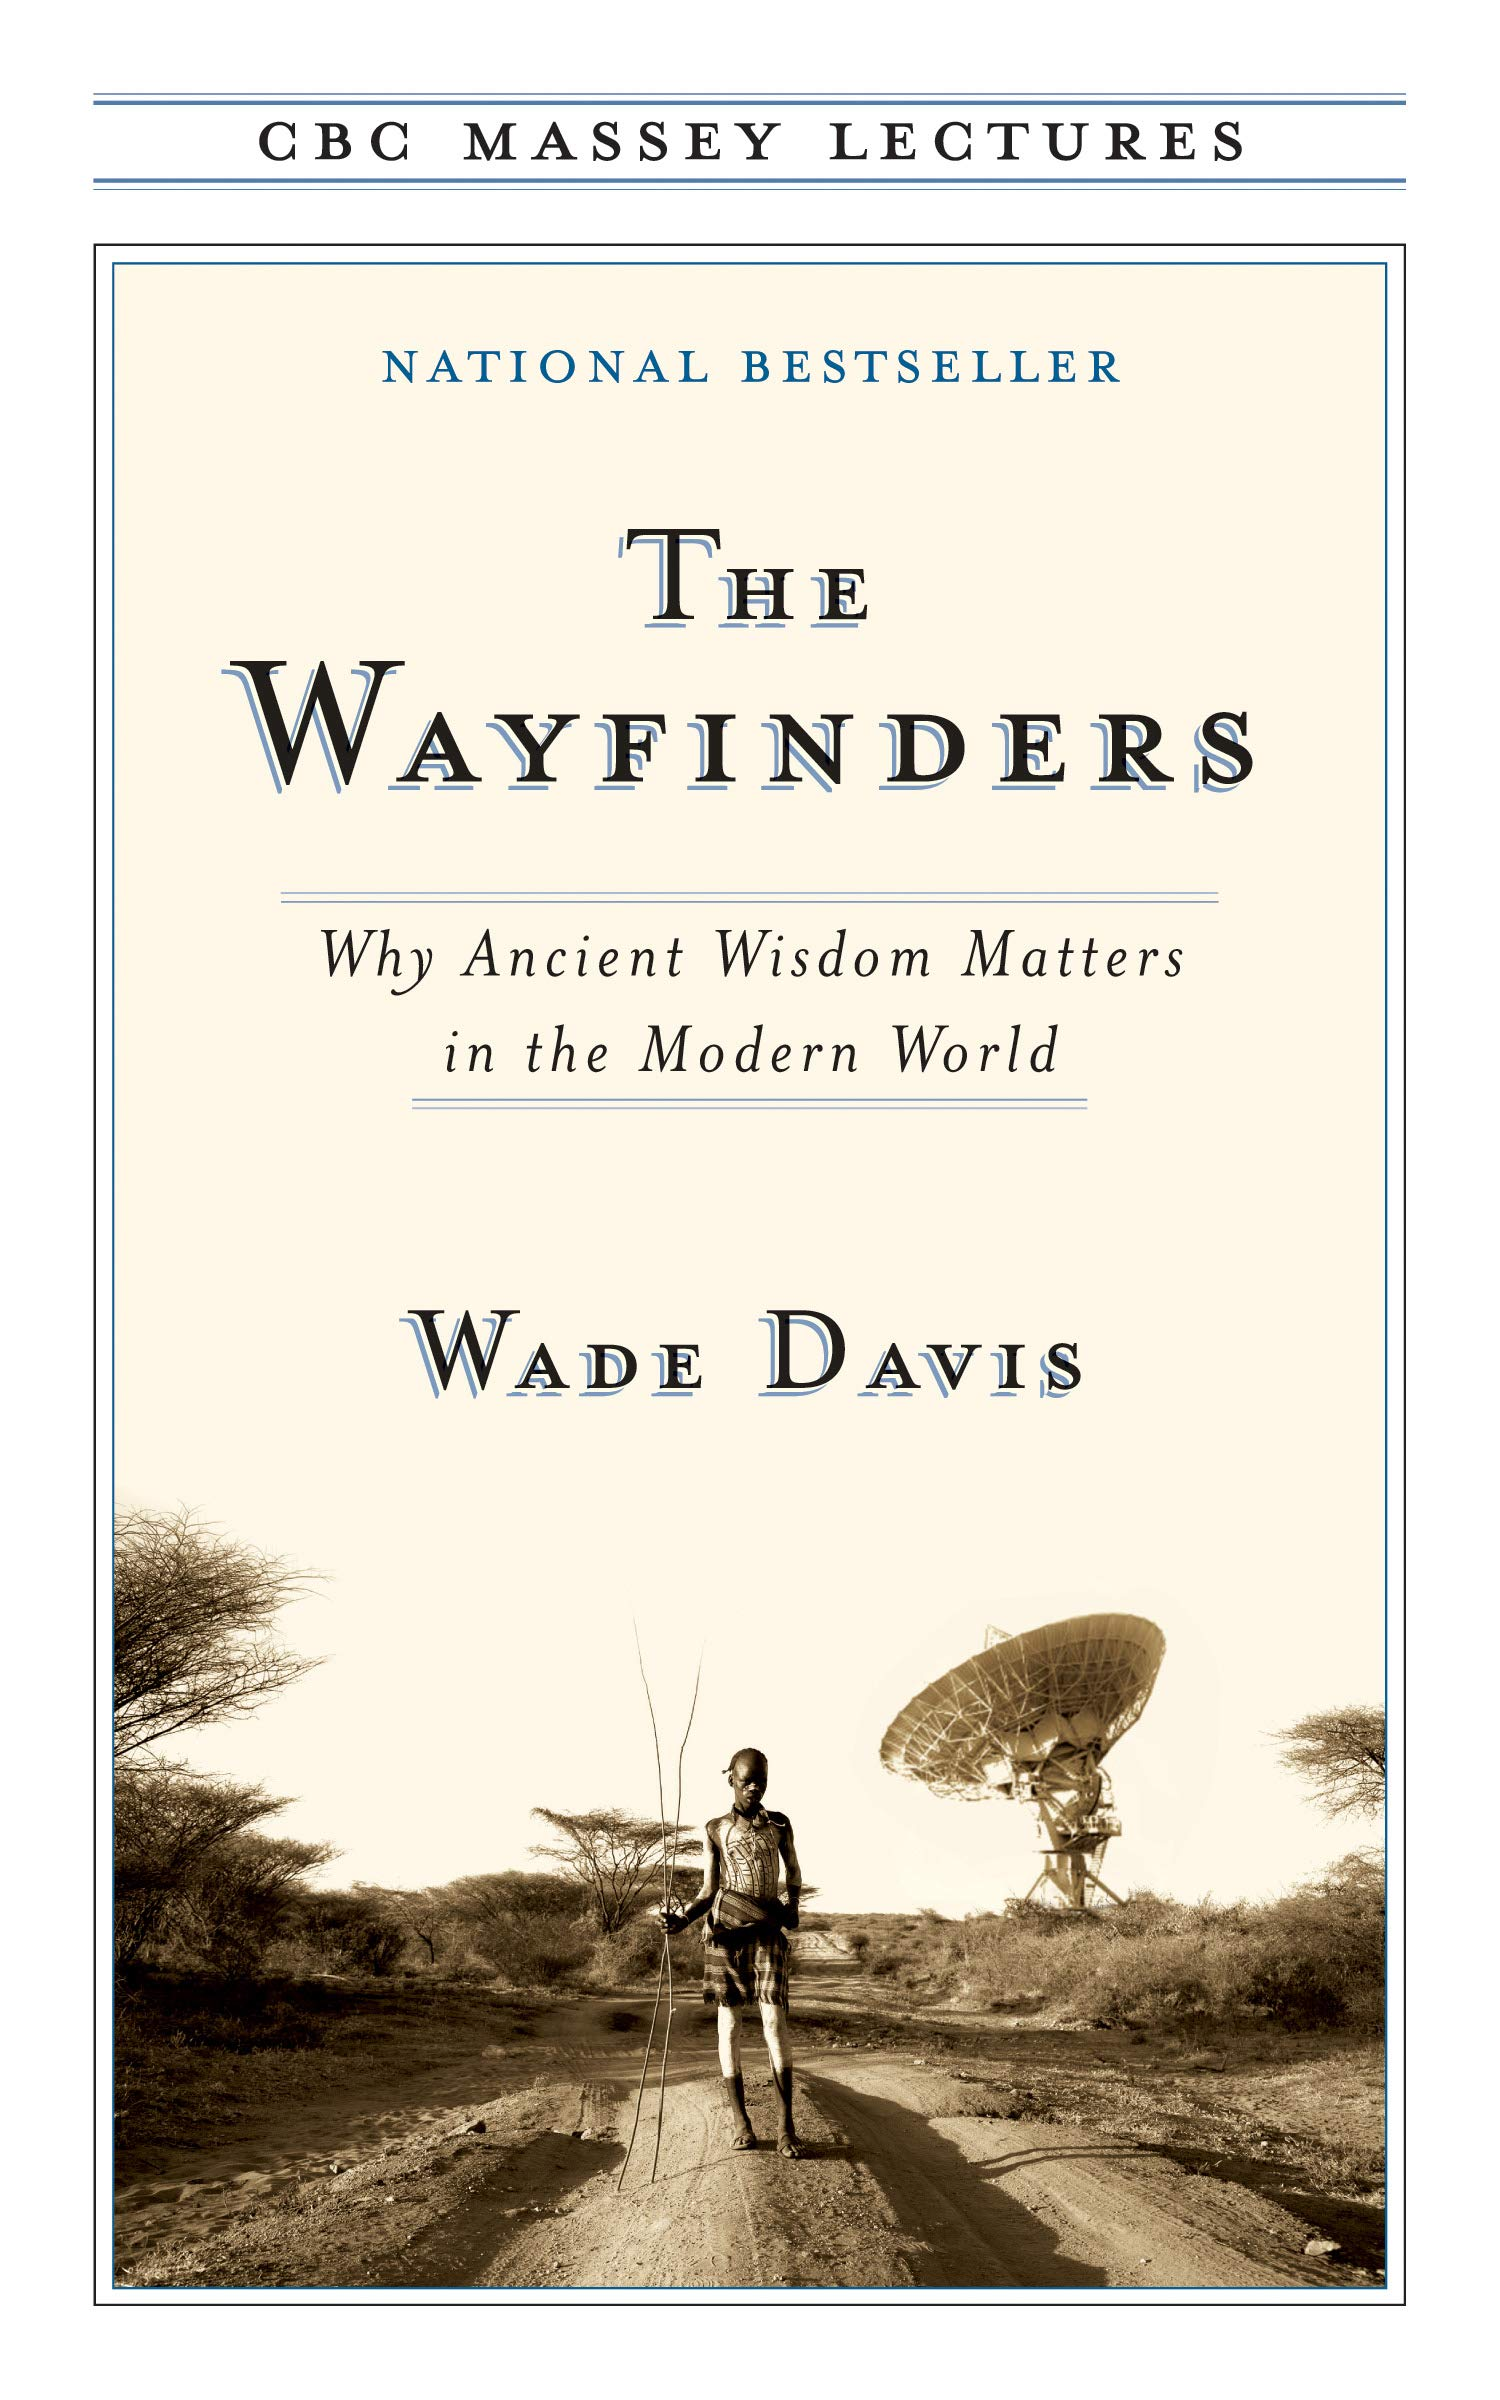 Download The Wayfinders: Why Ancient Wisdom Matters in the Modern World PDF